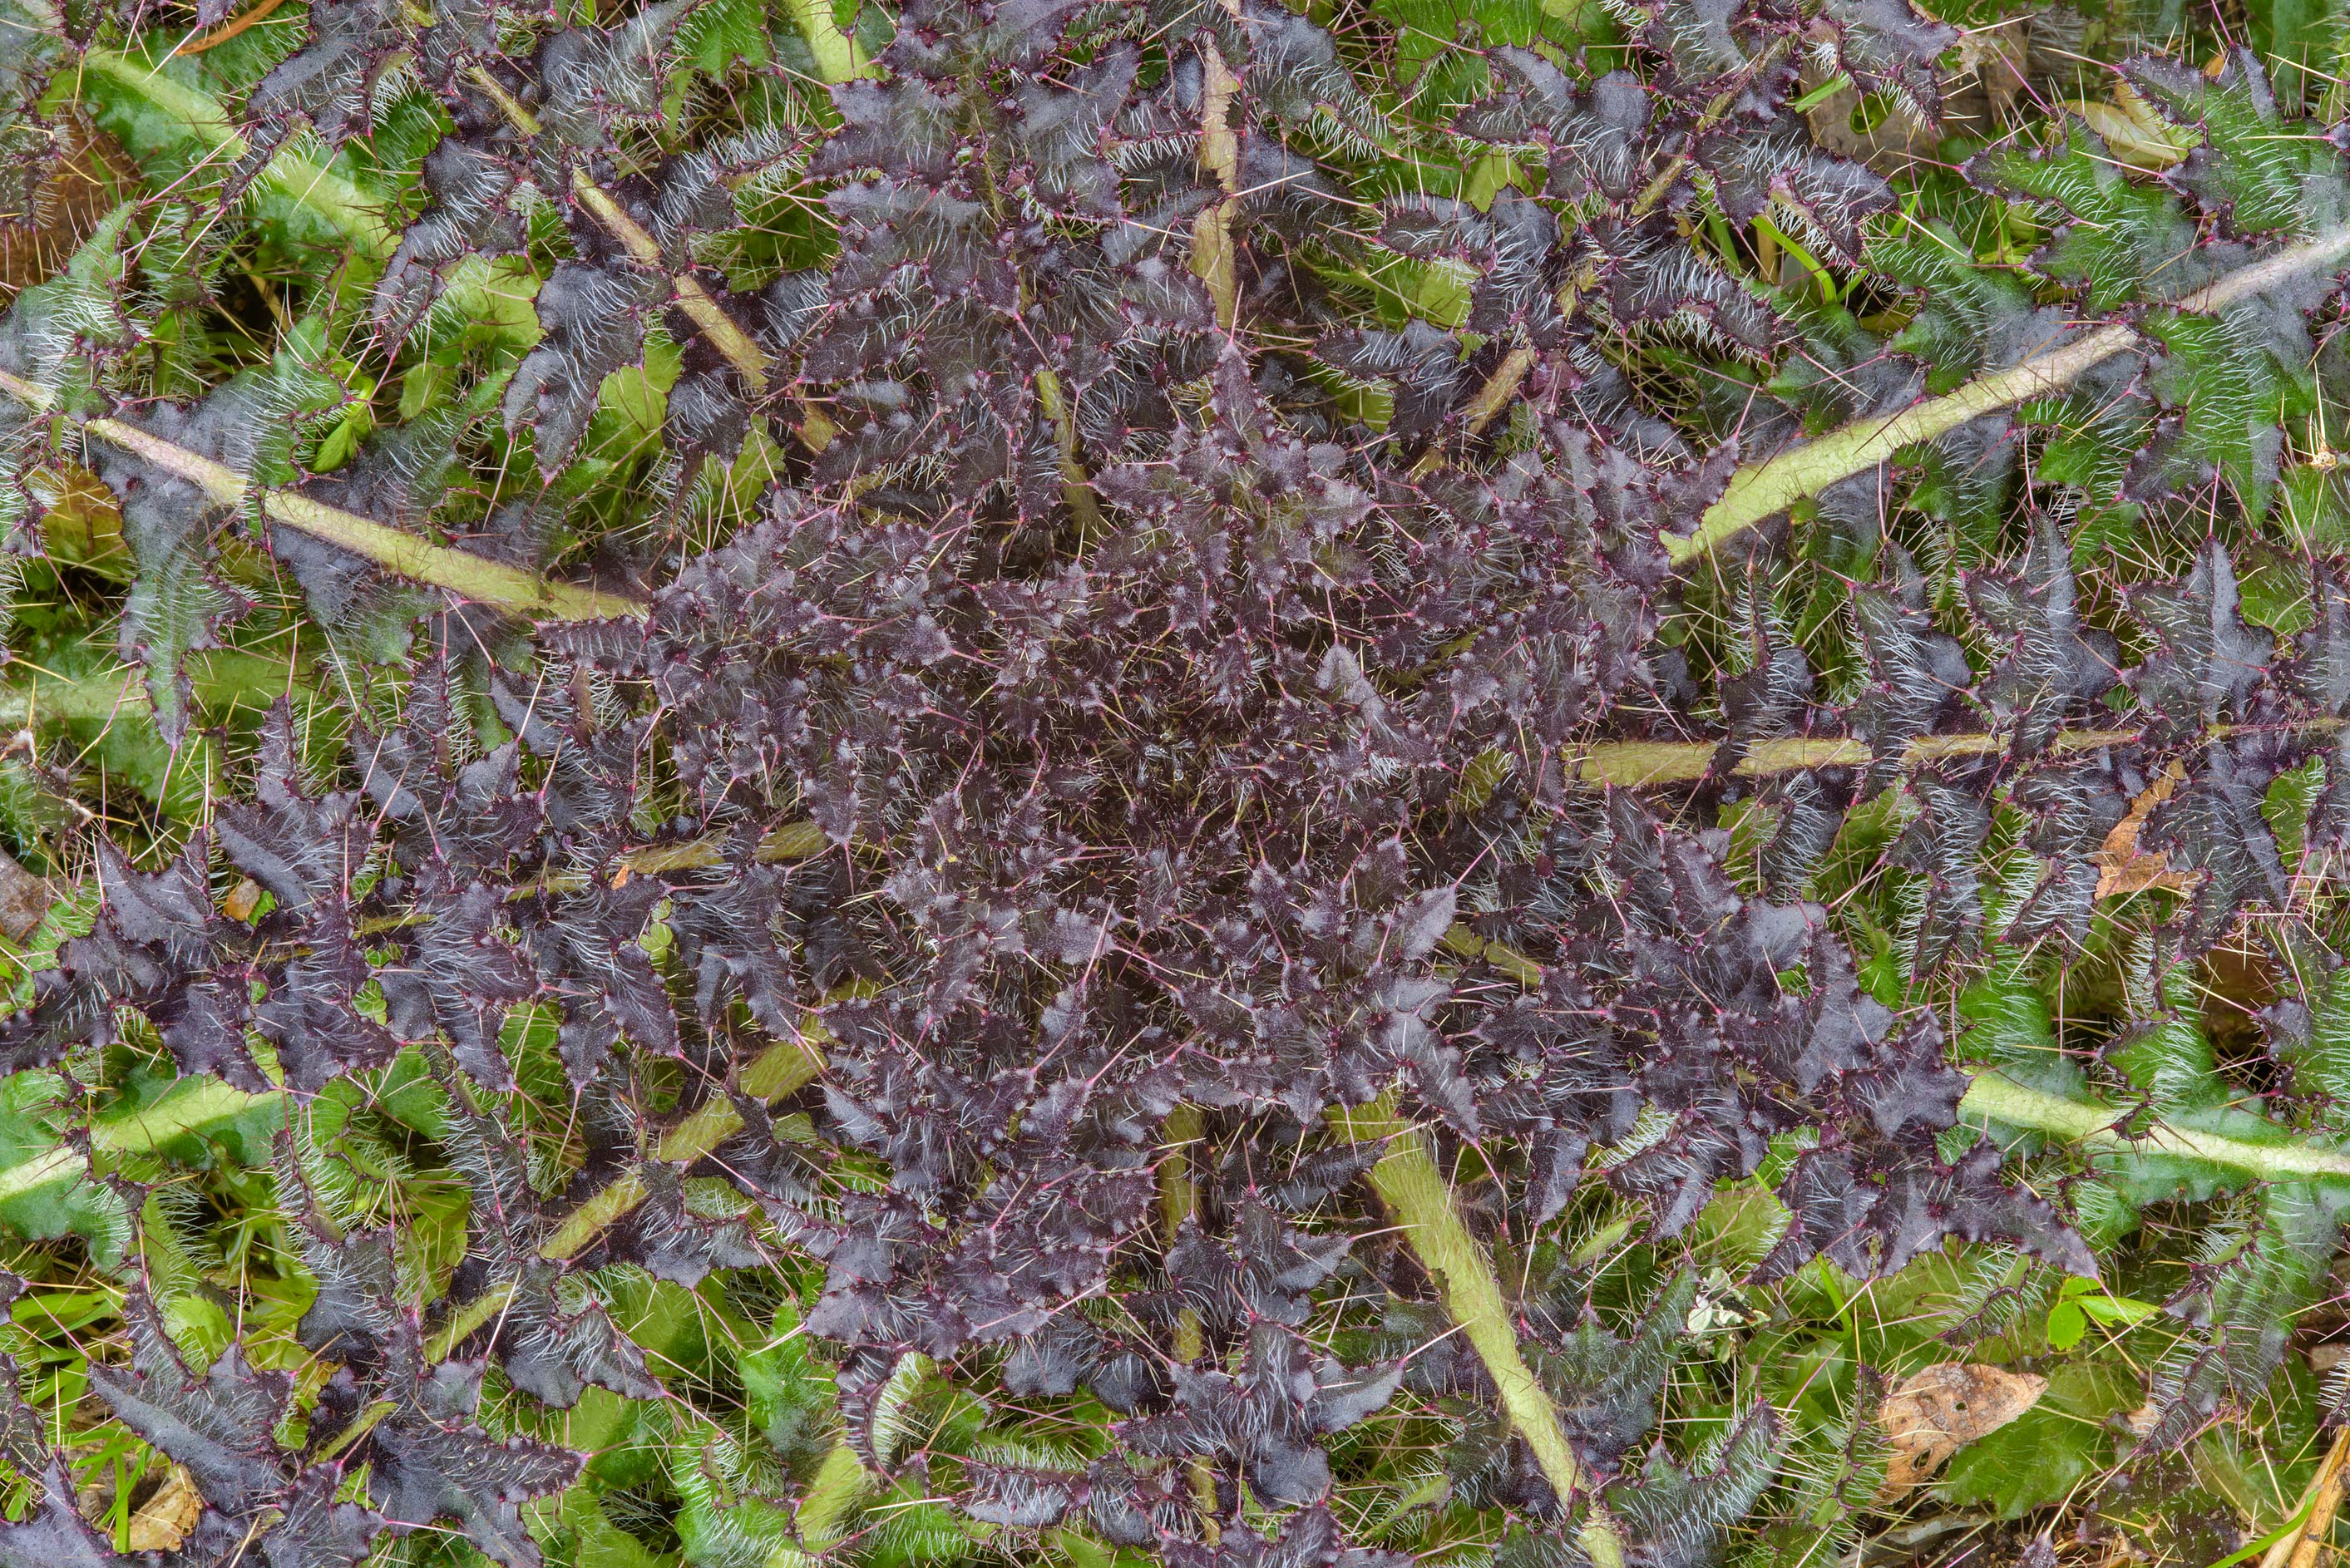 Details of a winter rosette of thistle under...in Dibuny, near St.Petersburg. Russia